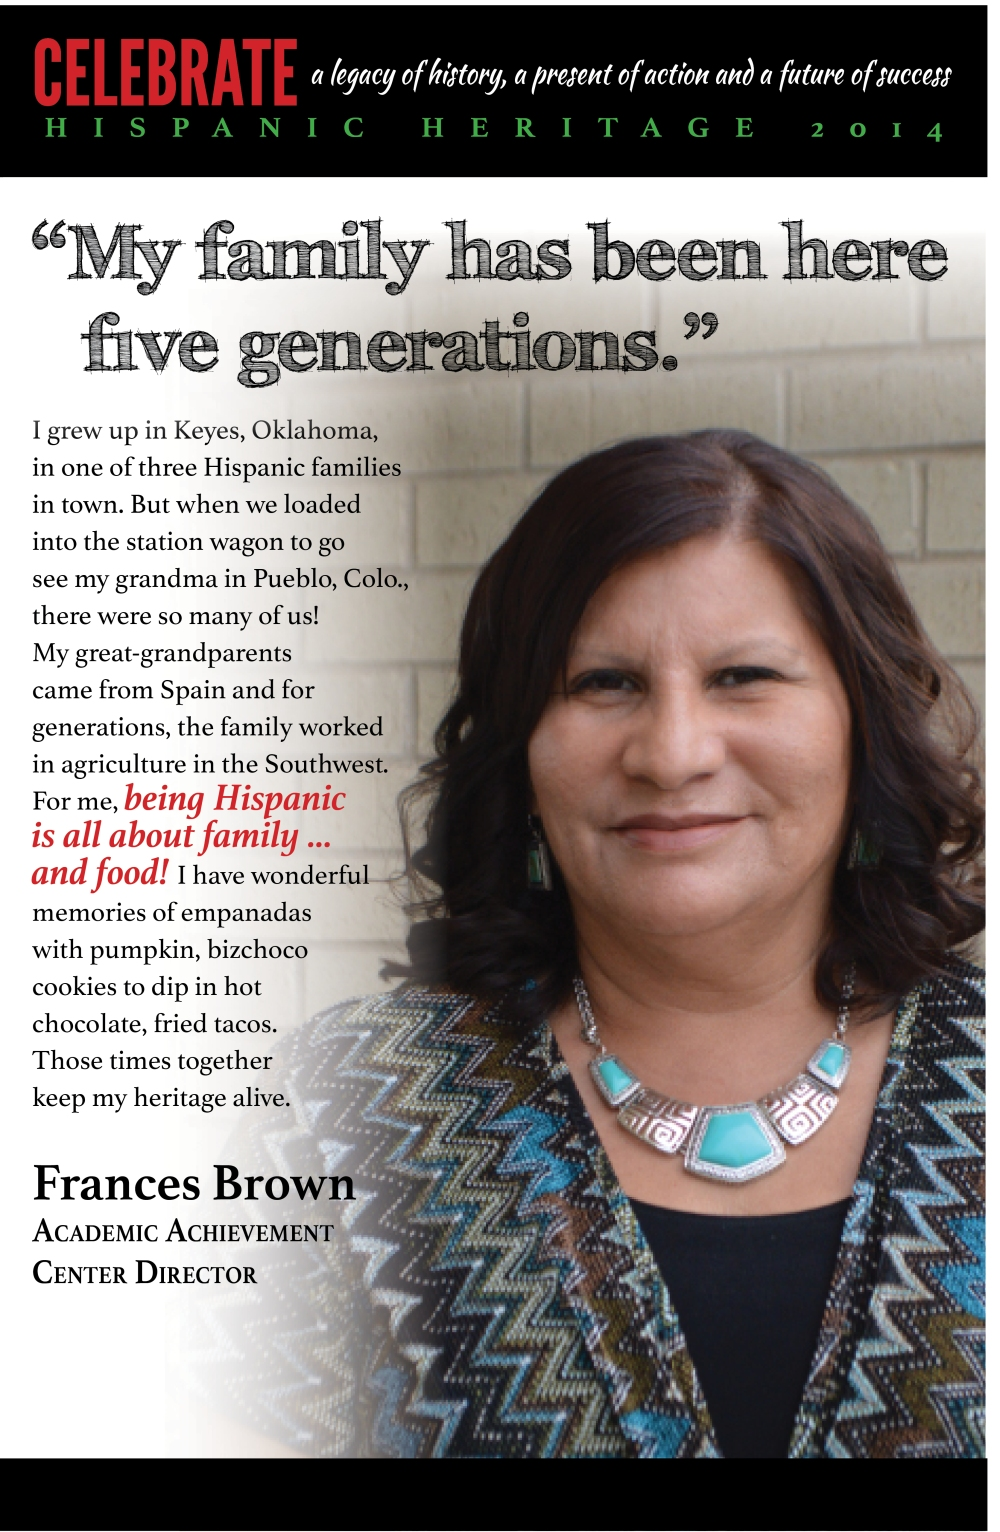 hhm-frances-brown-proof